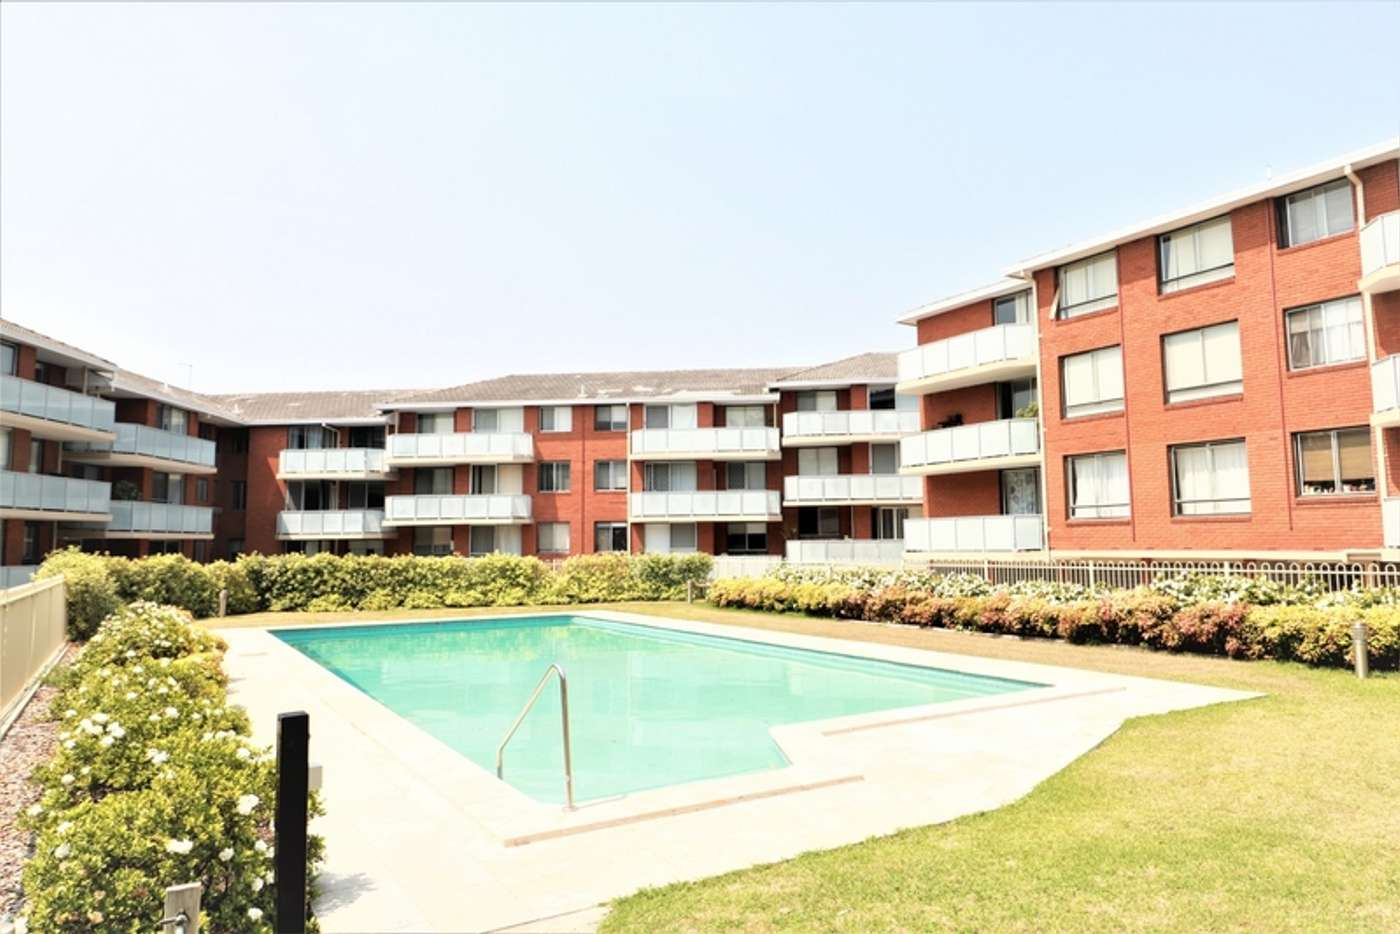 Main view of Homely apartment listing, 32/62 Grosvenor Crescent, Summer Hill NSW 2130